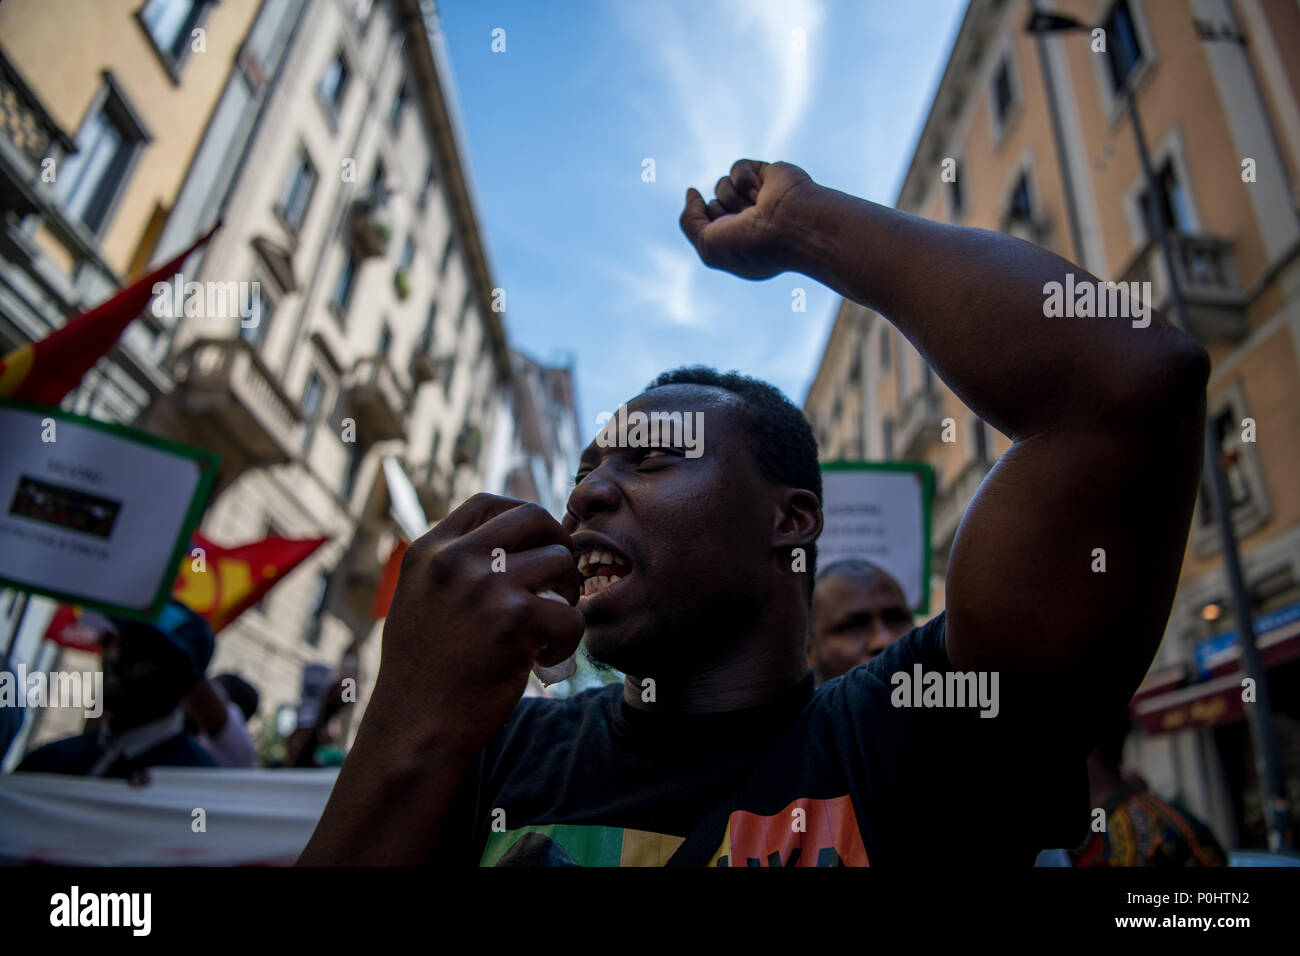 Milan, Italy - 9 June 2018: A man protests during an anti-racist rally against the killing of Soumaila Sacko, a  29 years old Malian farm worker migrant, murdered in a shooting last Sunday in the village of San Ferdinando in the southern Italian region of Calabria. - Stock Image